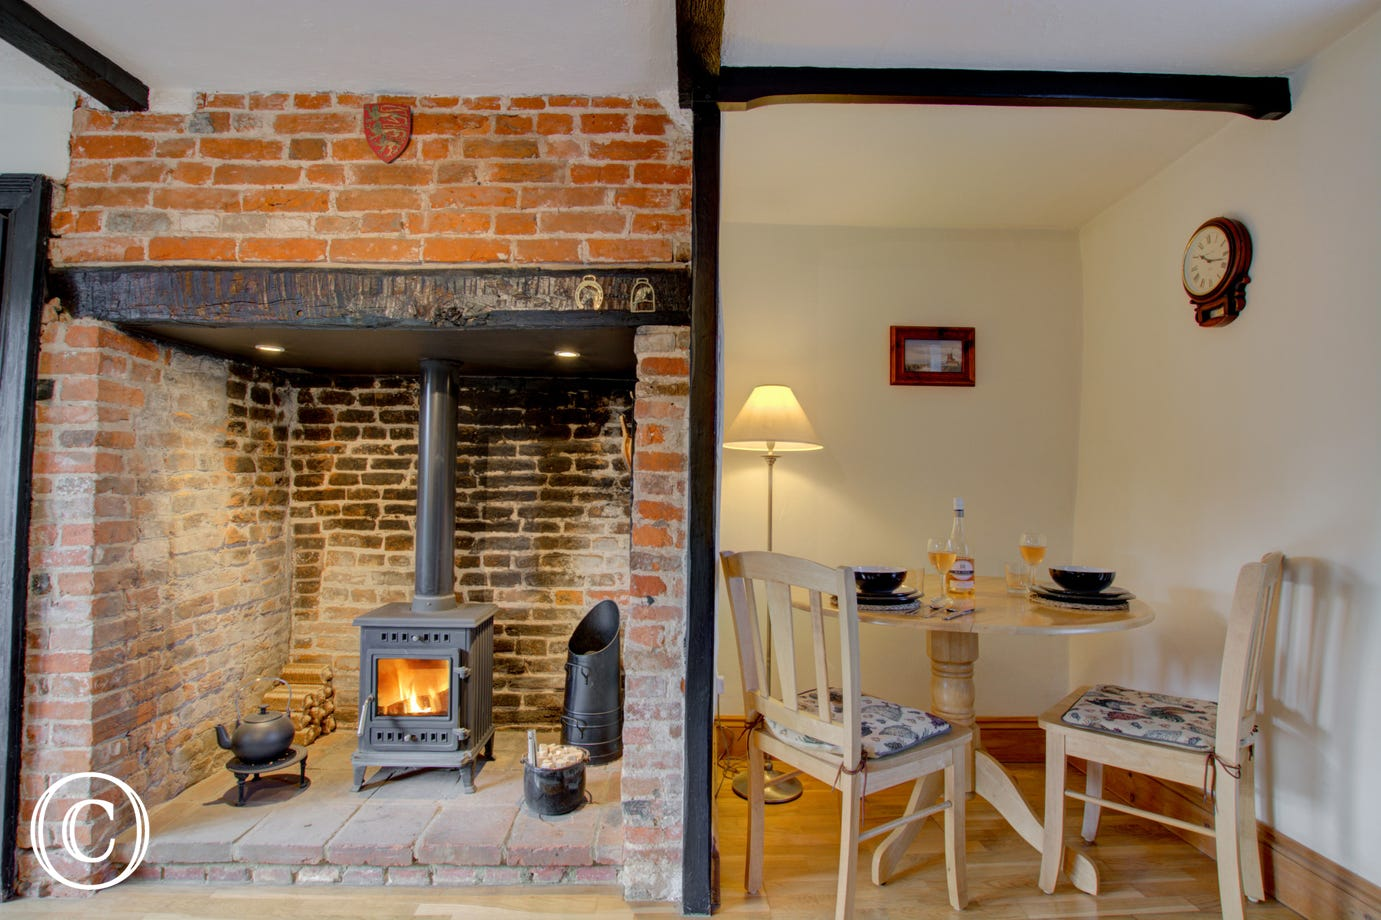 Lovely inglenook fireplace